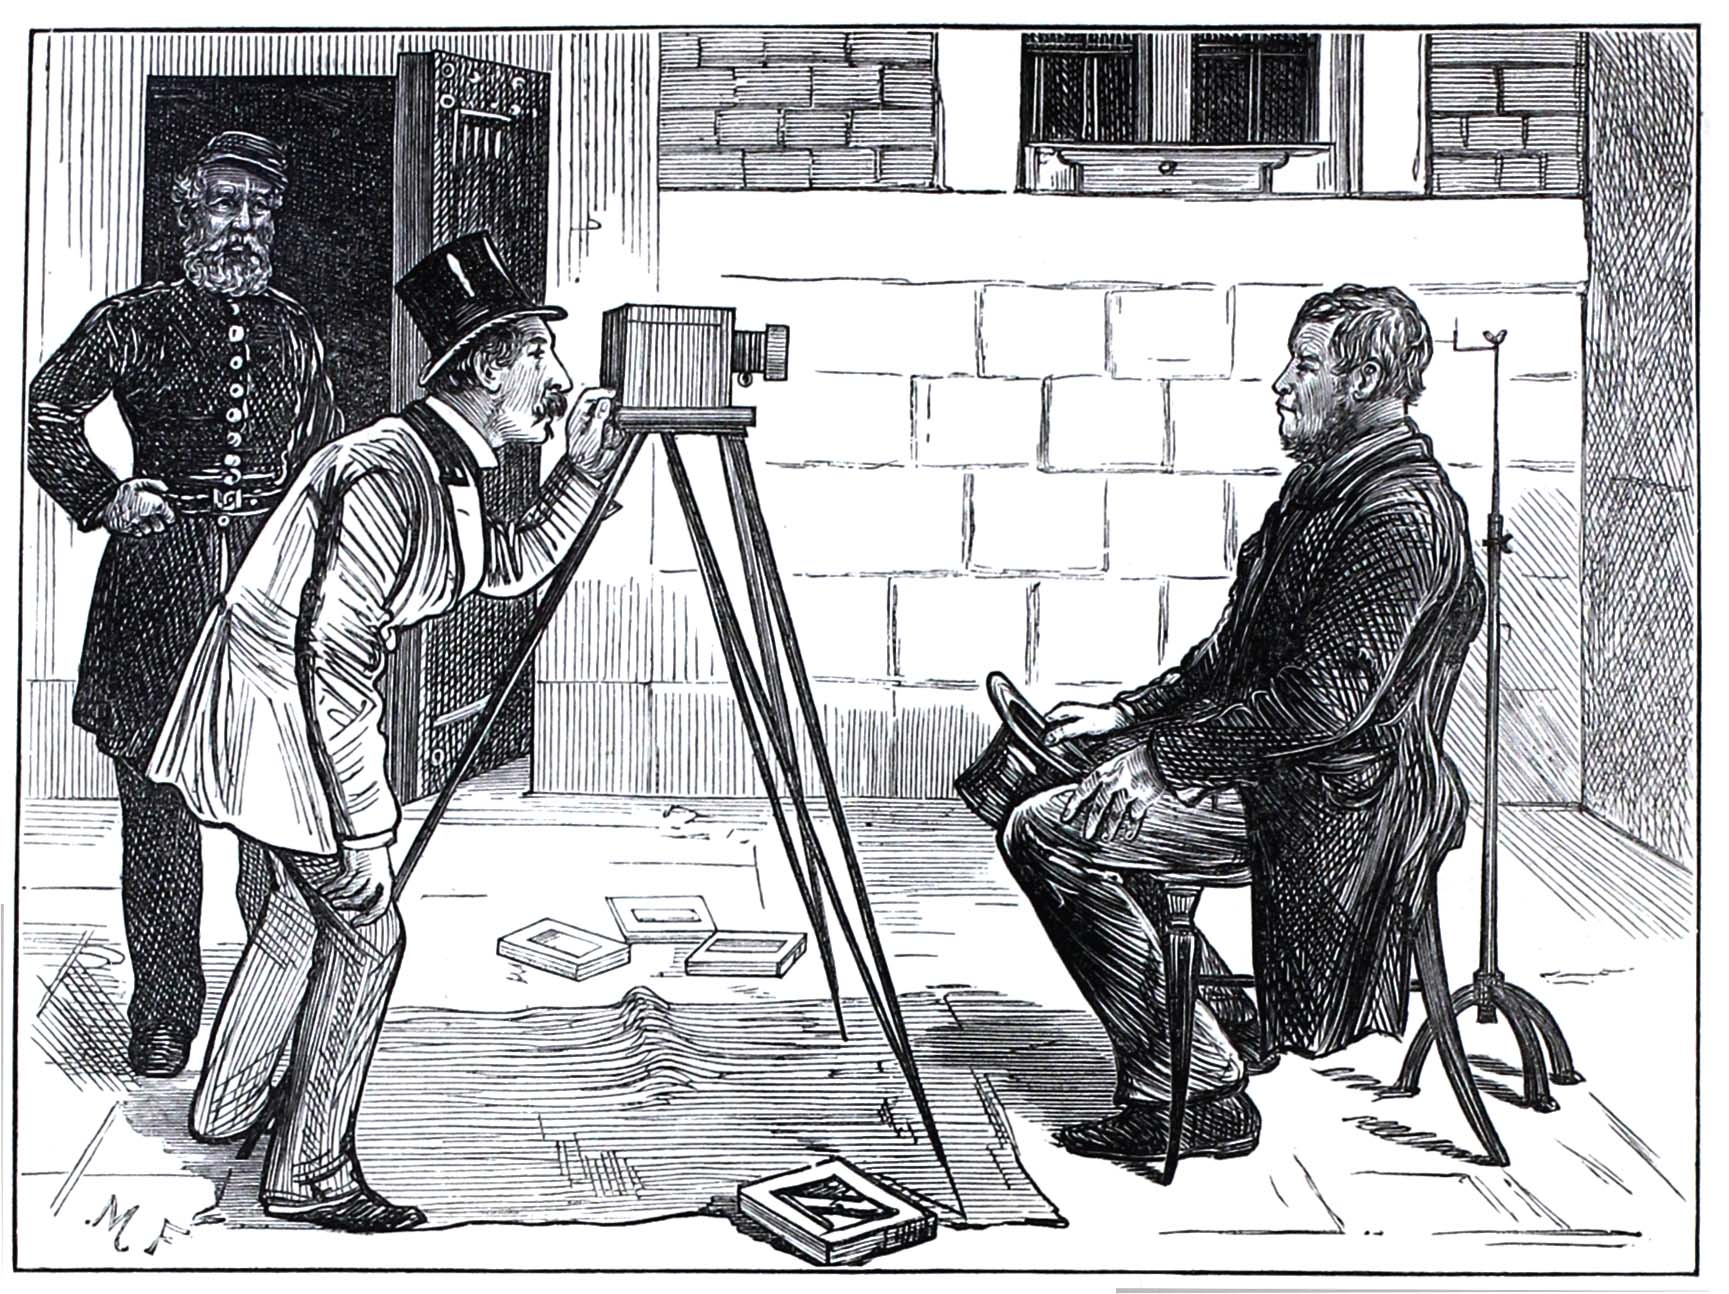 A prisoner at Newgate Prison having his photo taken for the prison records, from 'sketches of Newgate' published in theIllustrated London News in 1873